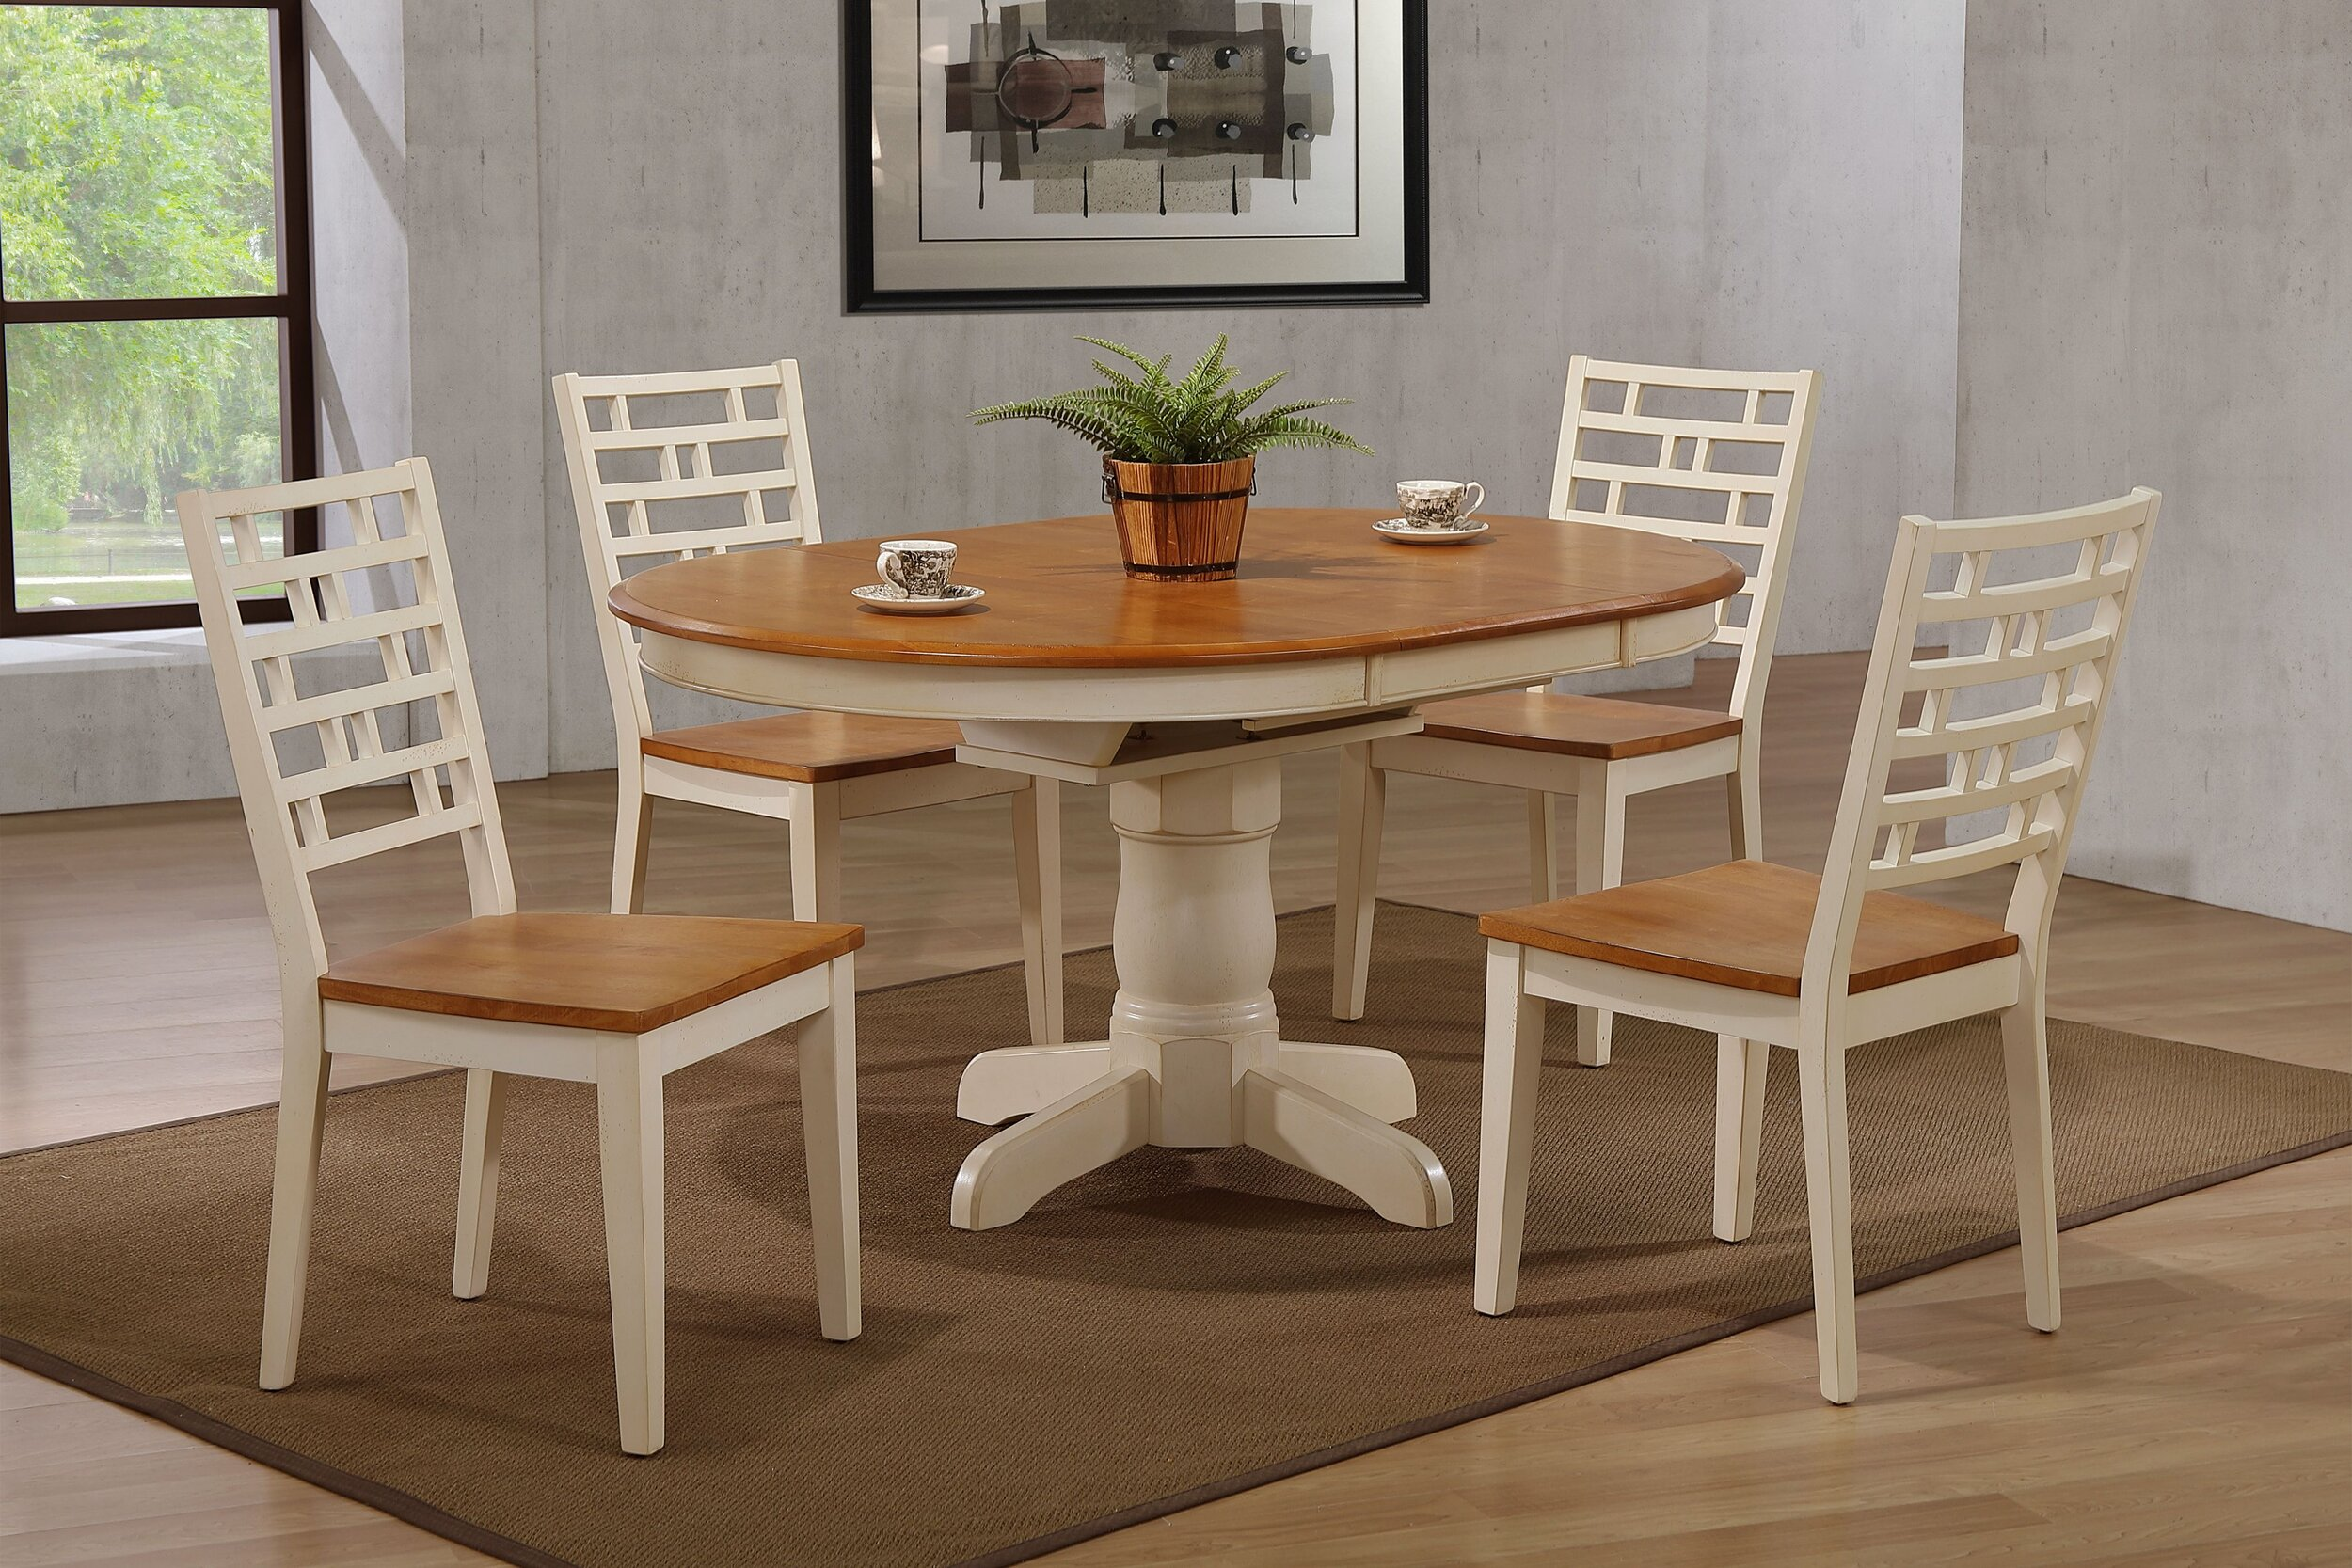 "42""x42""x60"" Antiqued Caramel Biscotti Table With Designer Back Chairs (5-Piece Dining Set)"